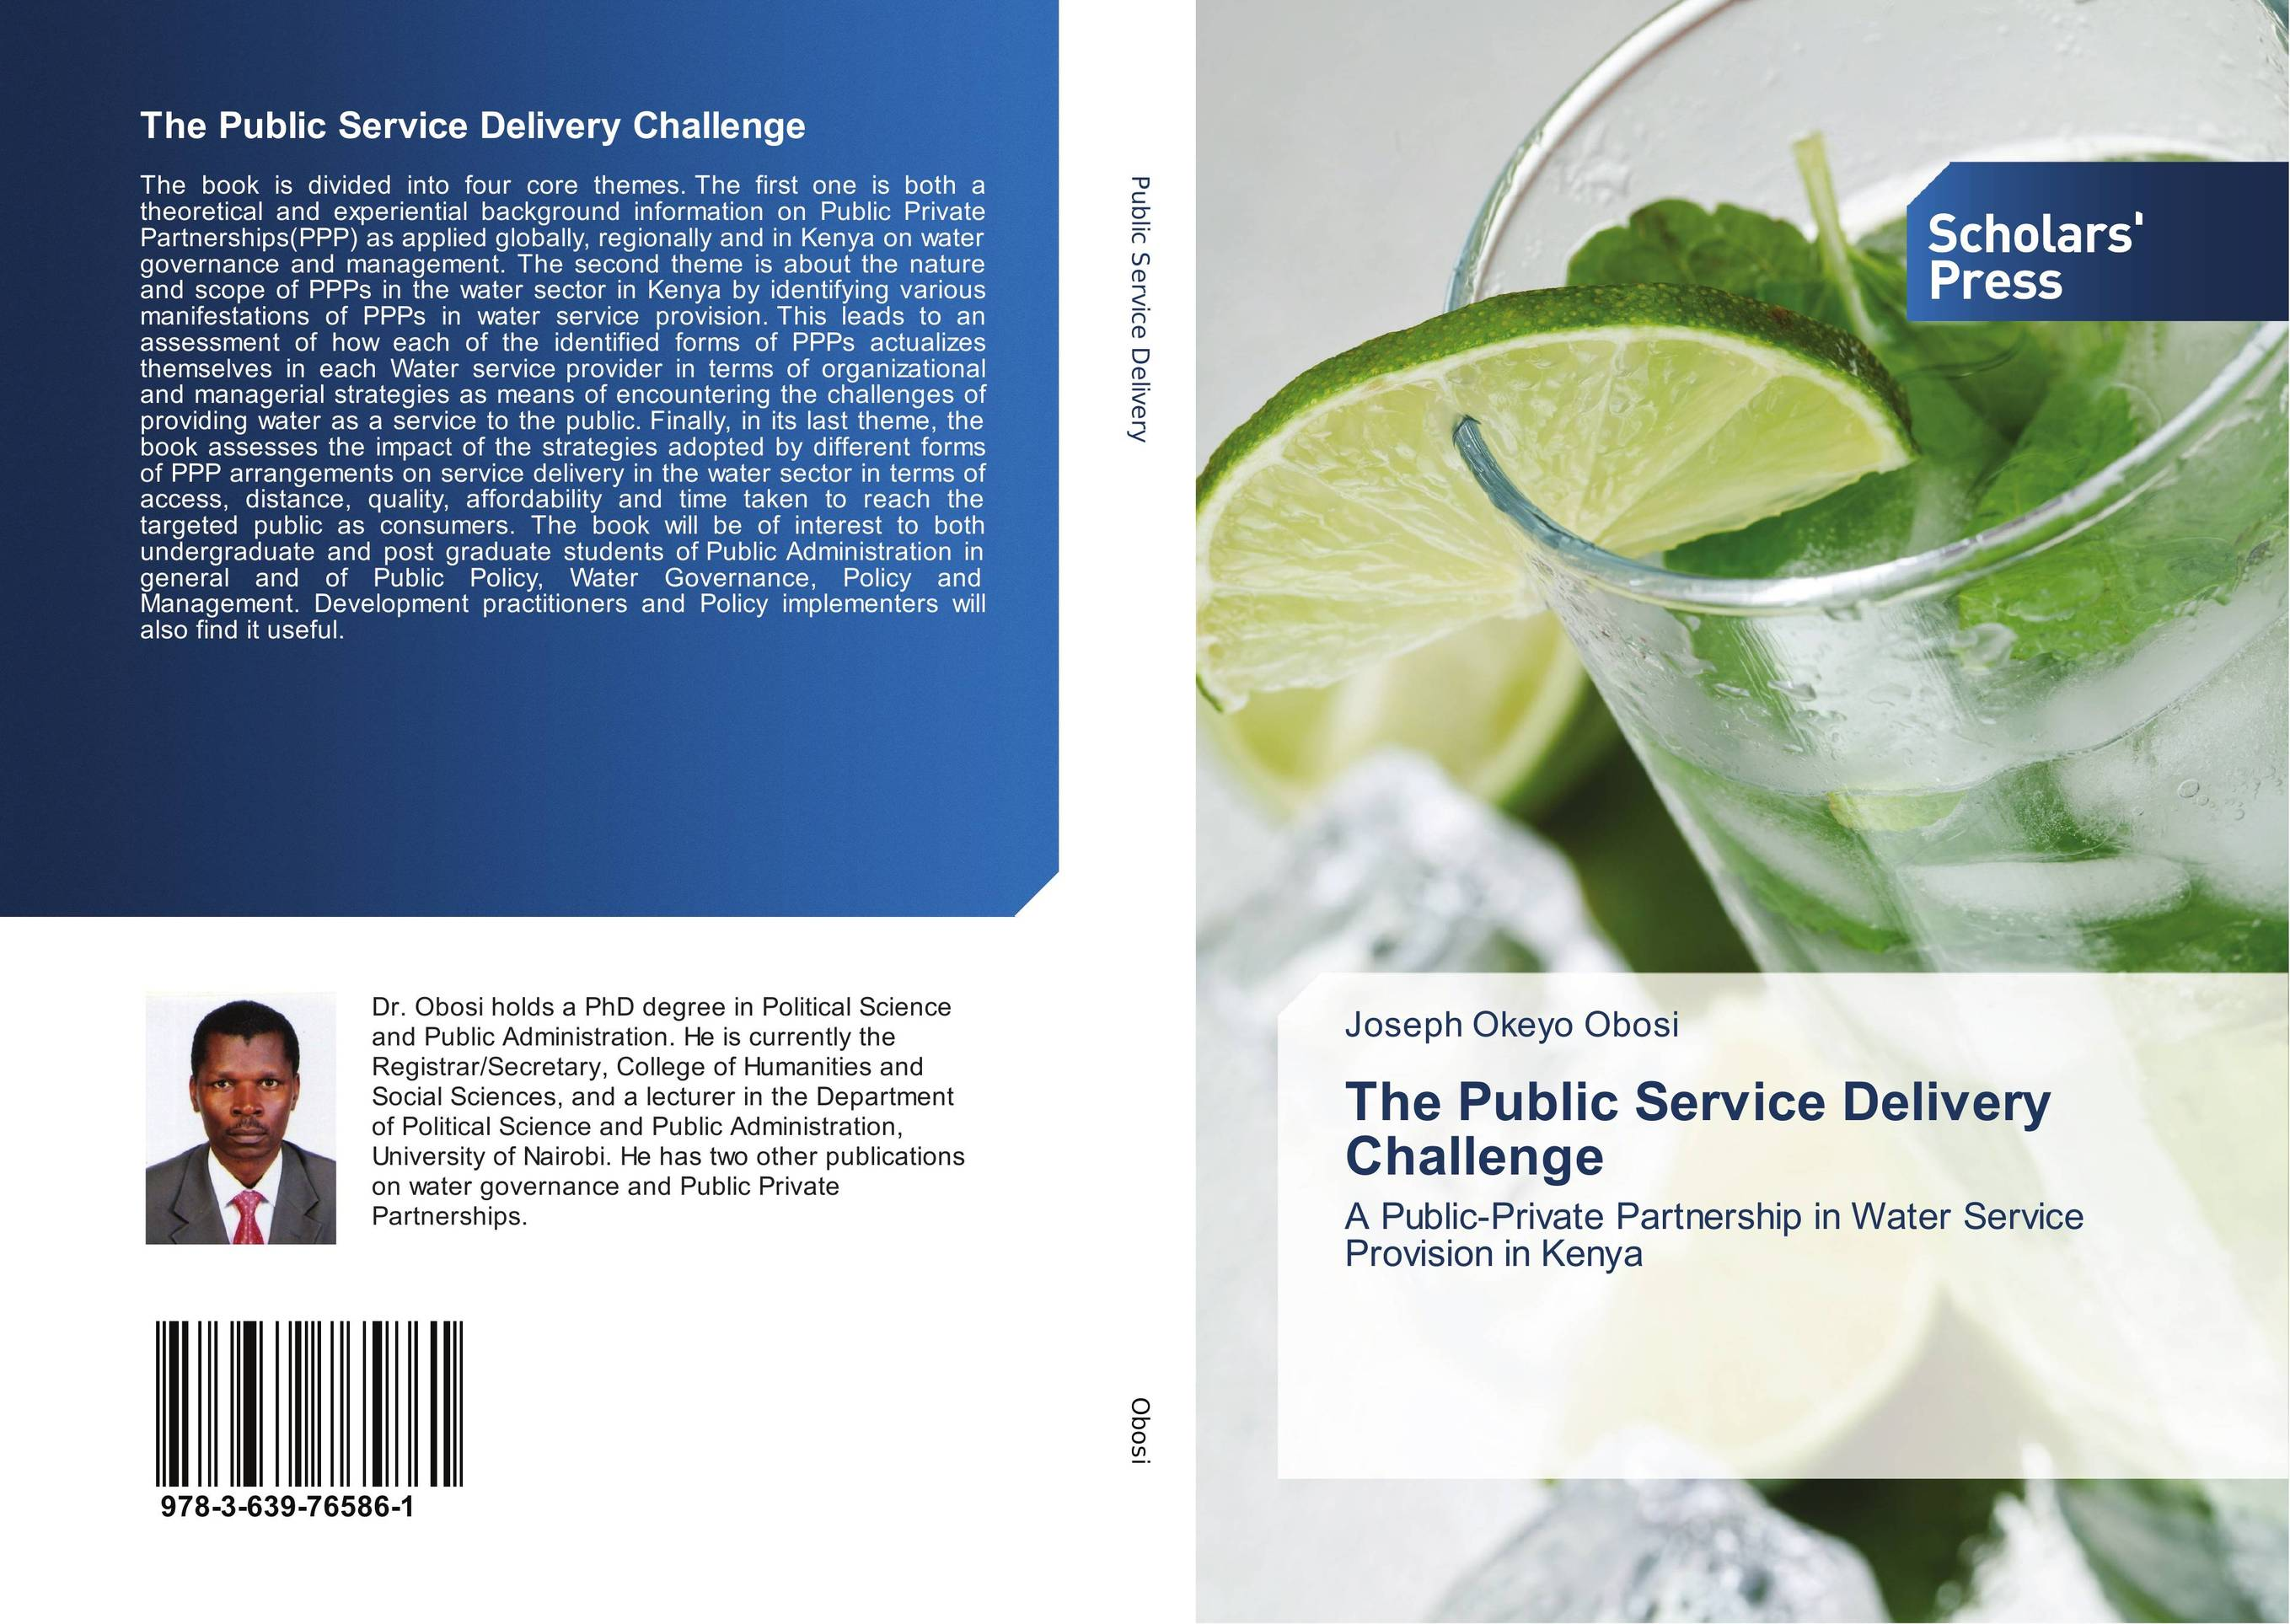 The Public Service Delivery Challenge